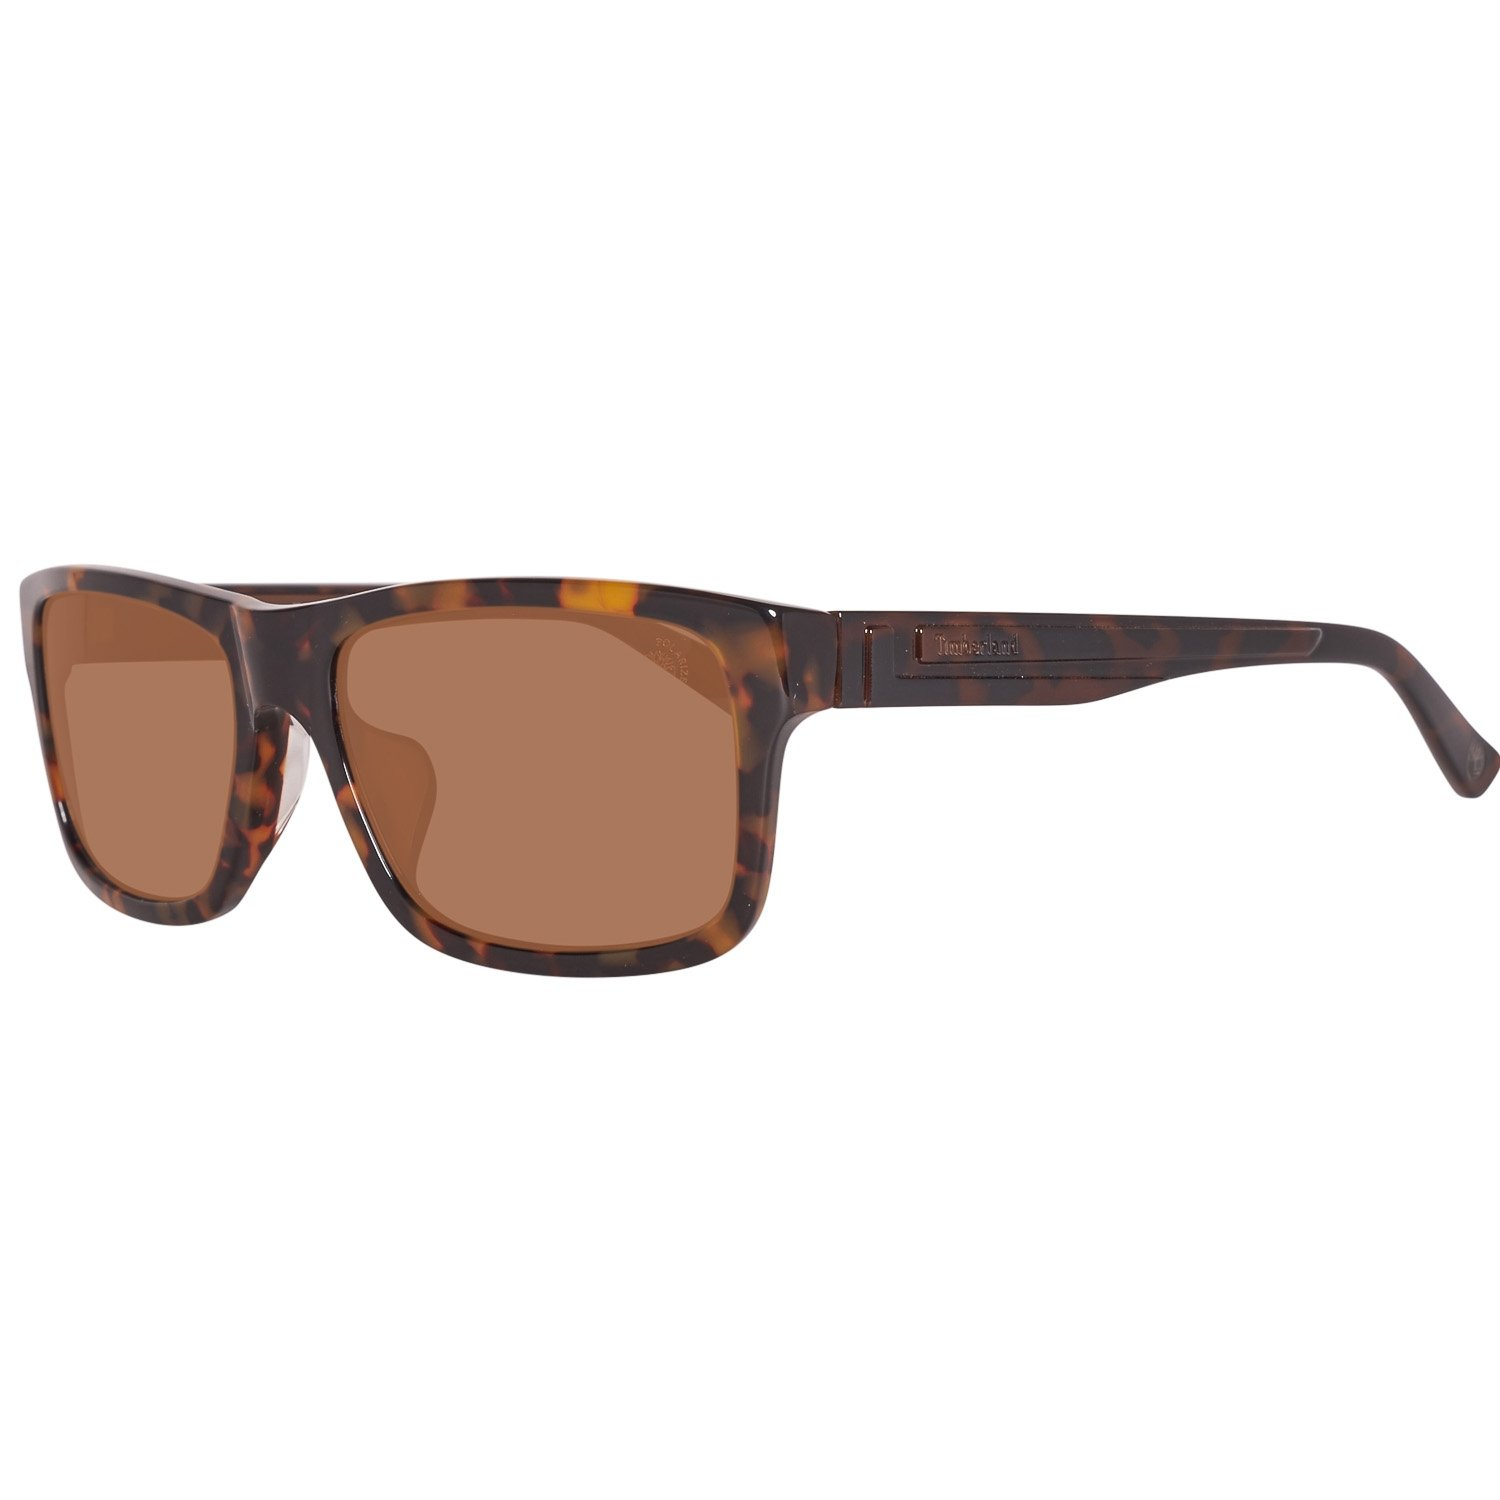 Timberland Men''s Sonnenbrille TB9096-F 5956H Sunglasses, Brown (Braun), 59